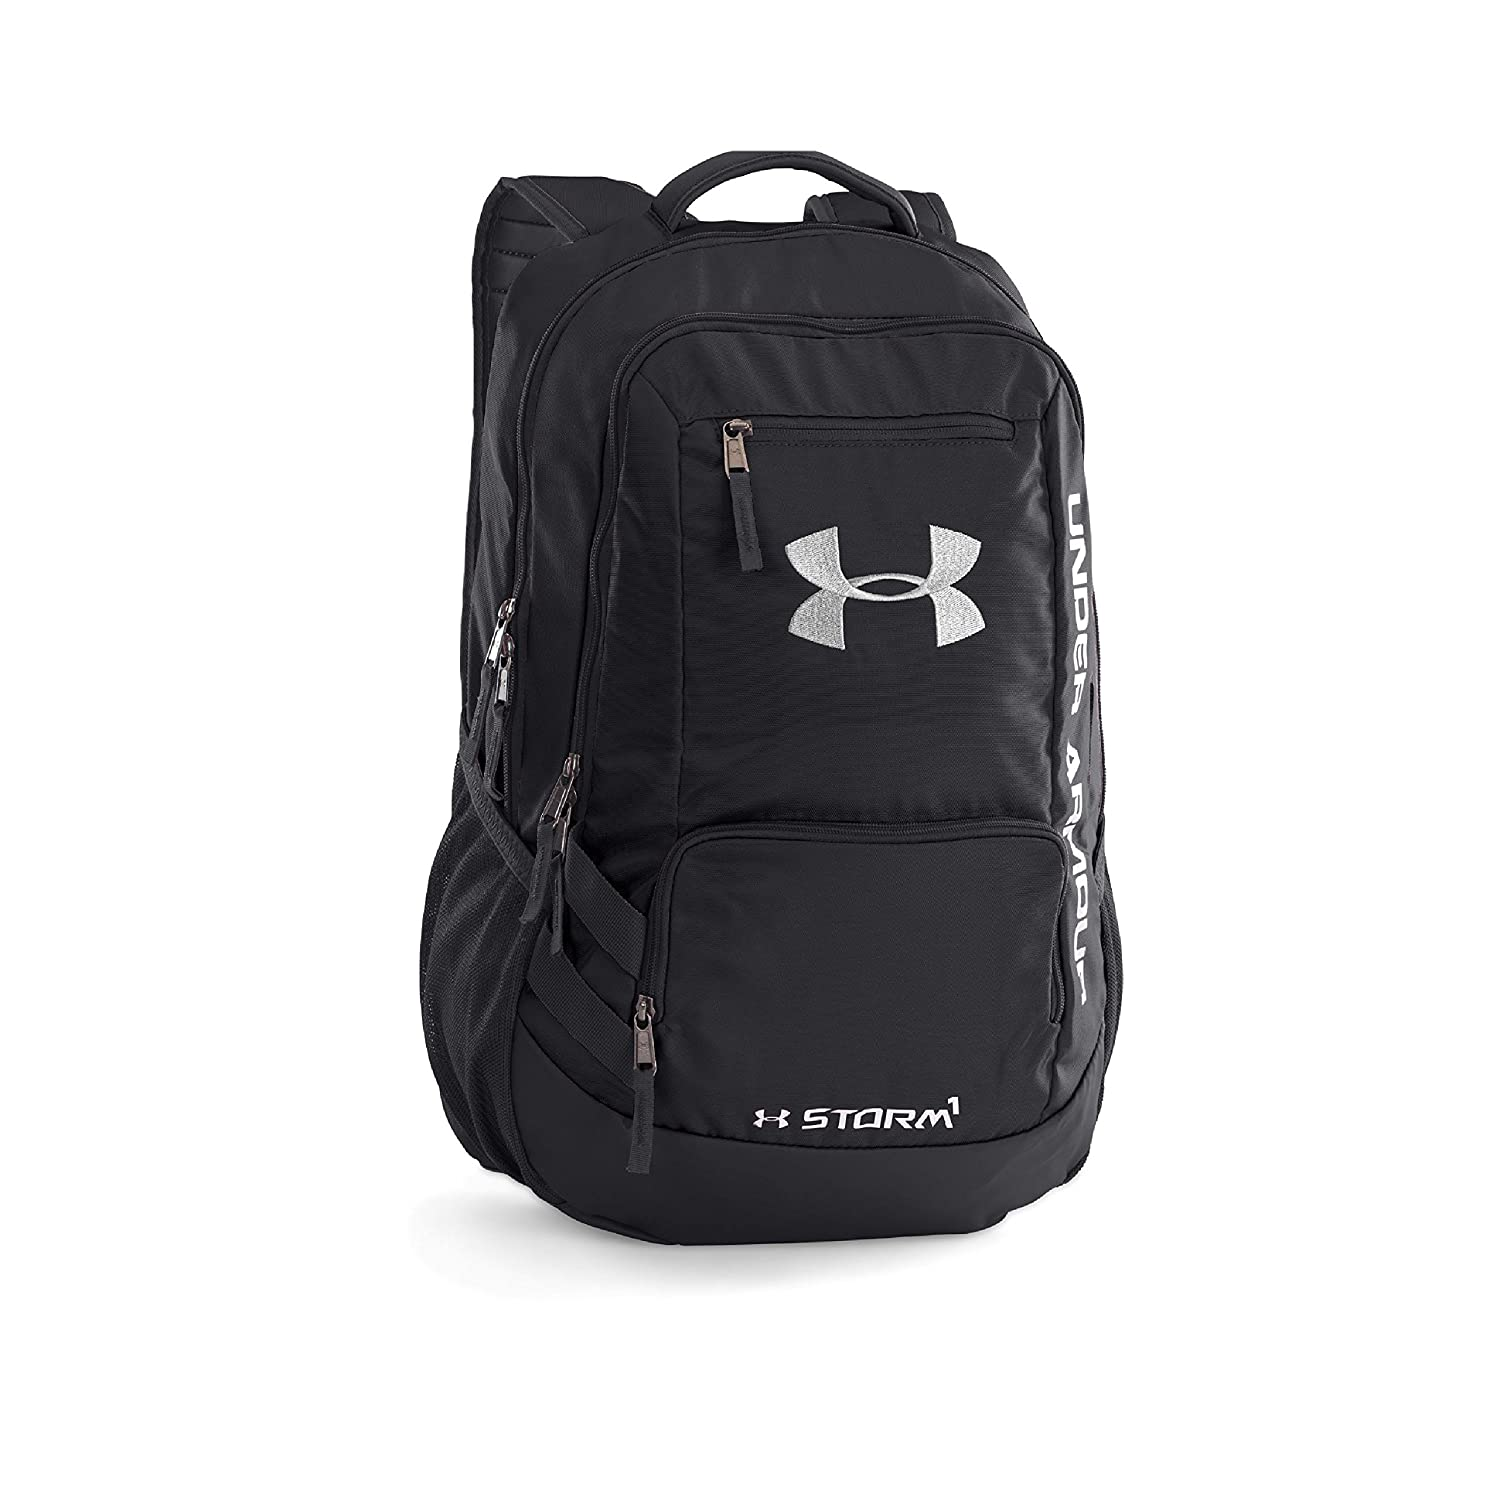 d883d0549e4b Under Armour Hustle Black Casual Backpack (1263964-001)  UNDER ARMOUR   Amazon.in  Bags